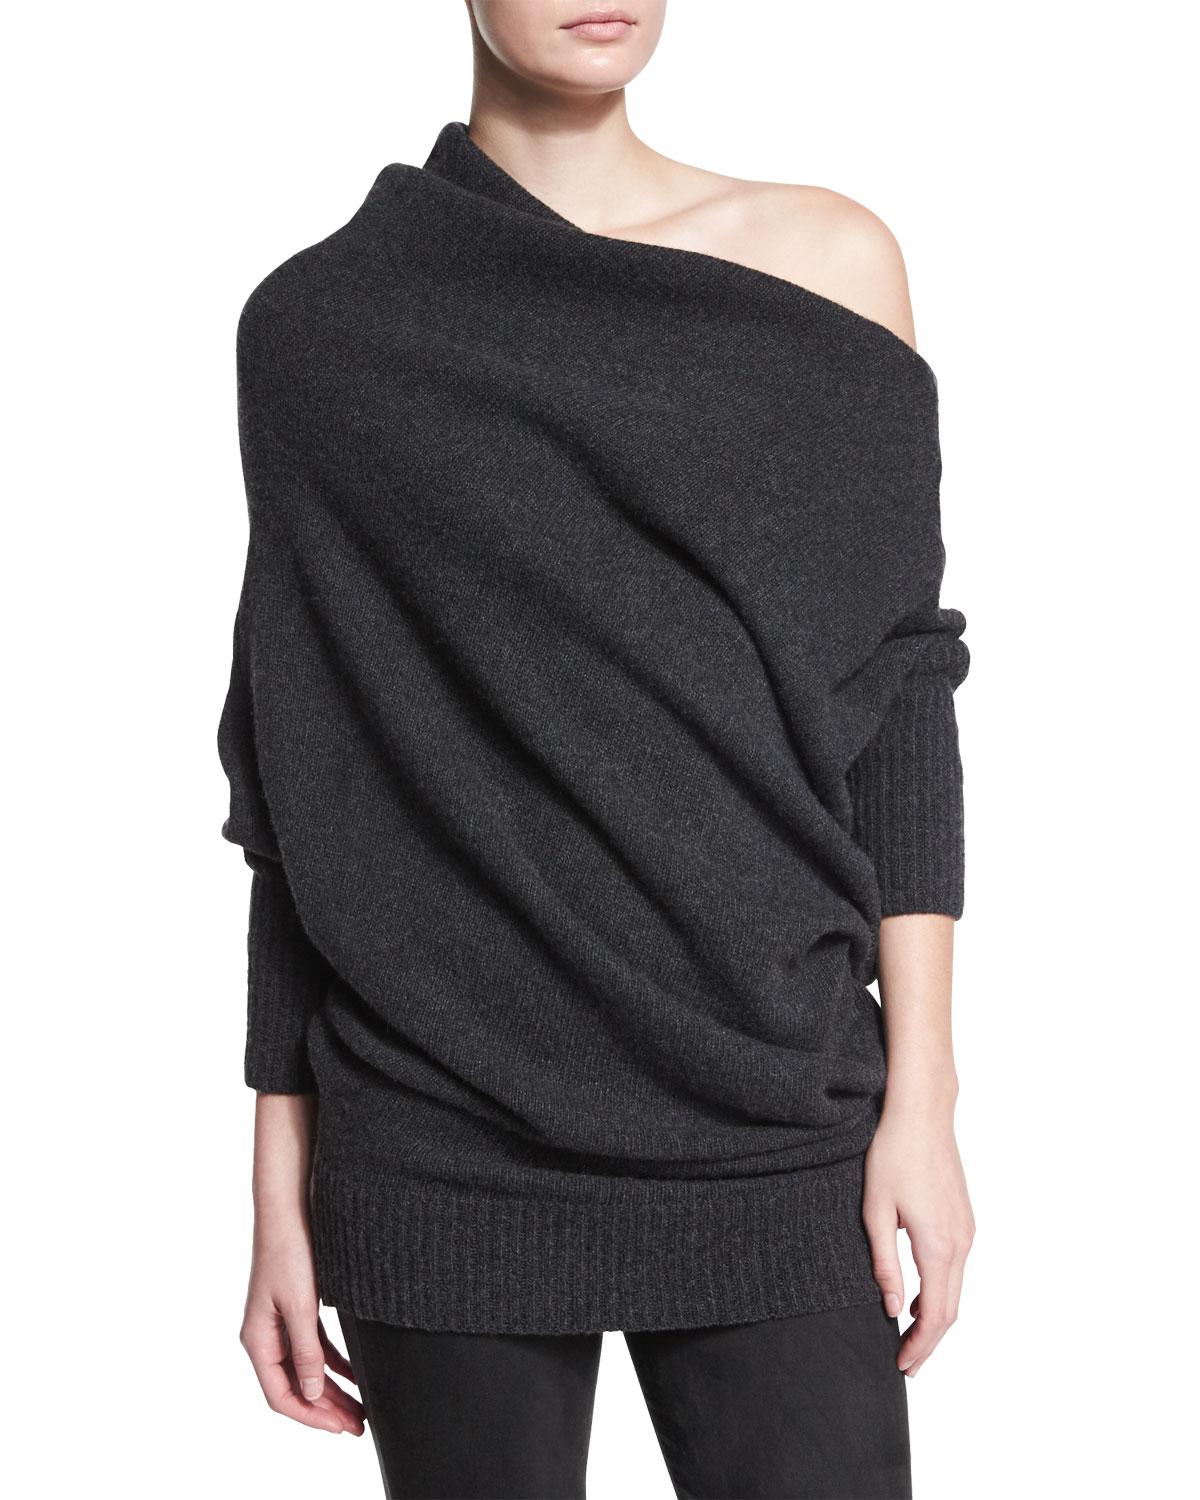 Donna karan Off-the-shoulder Cashmere Sweater in Gray | Lyst